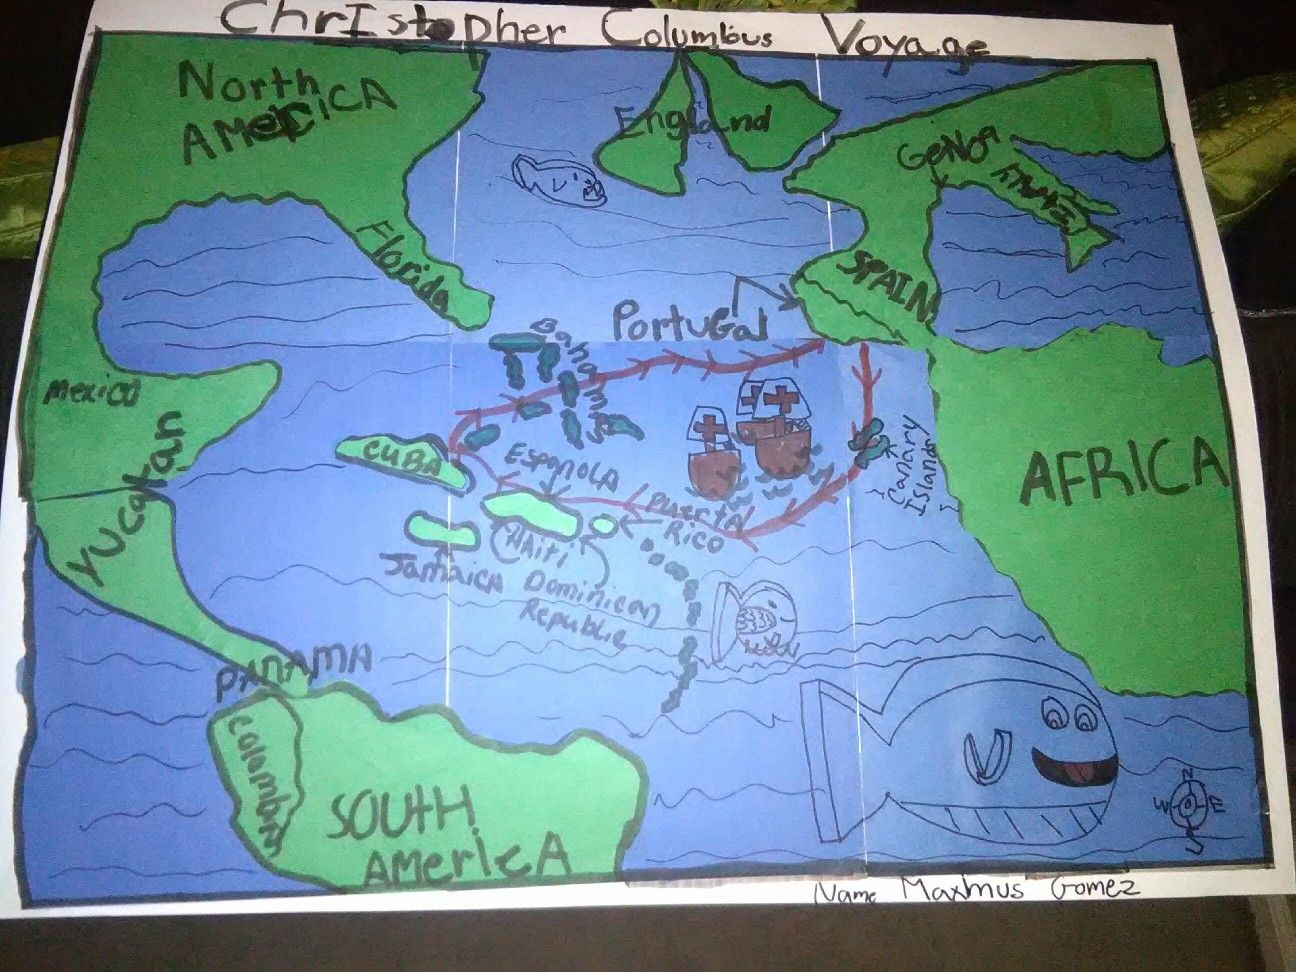 Christopher Columbus Route To America 4th Grade School